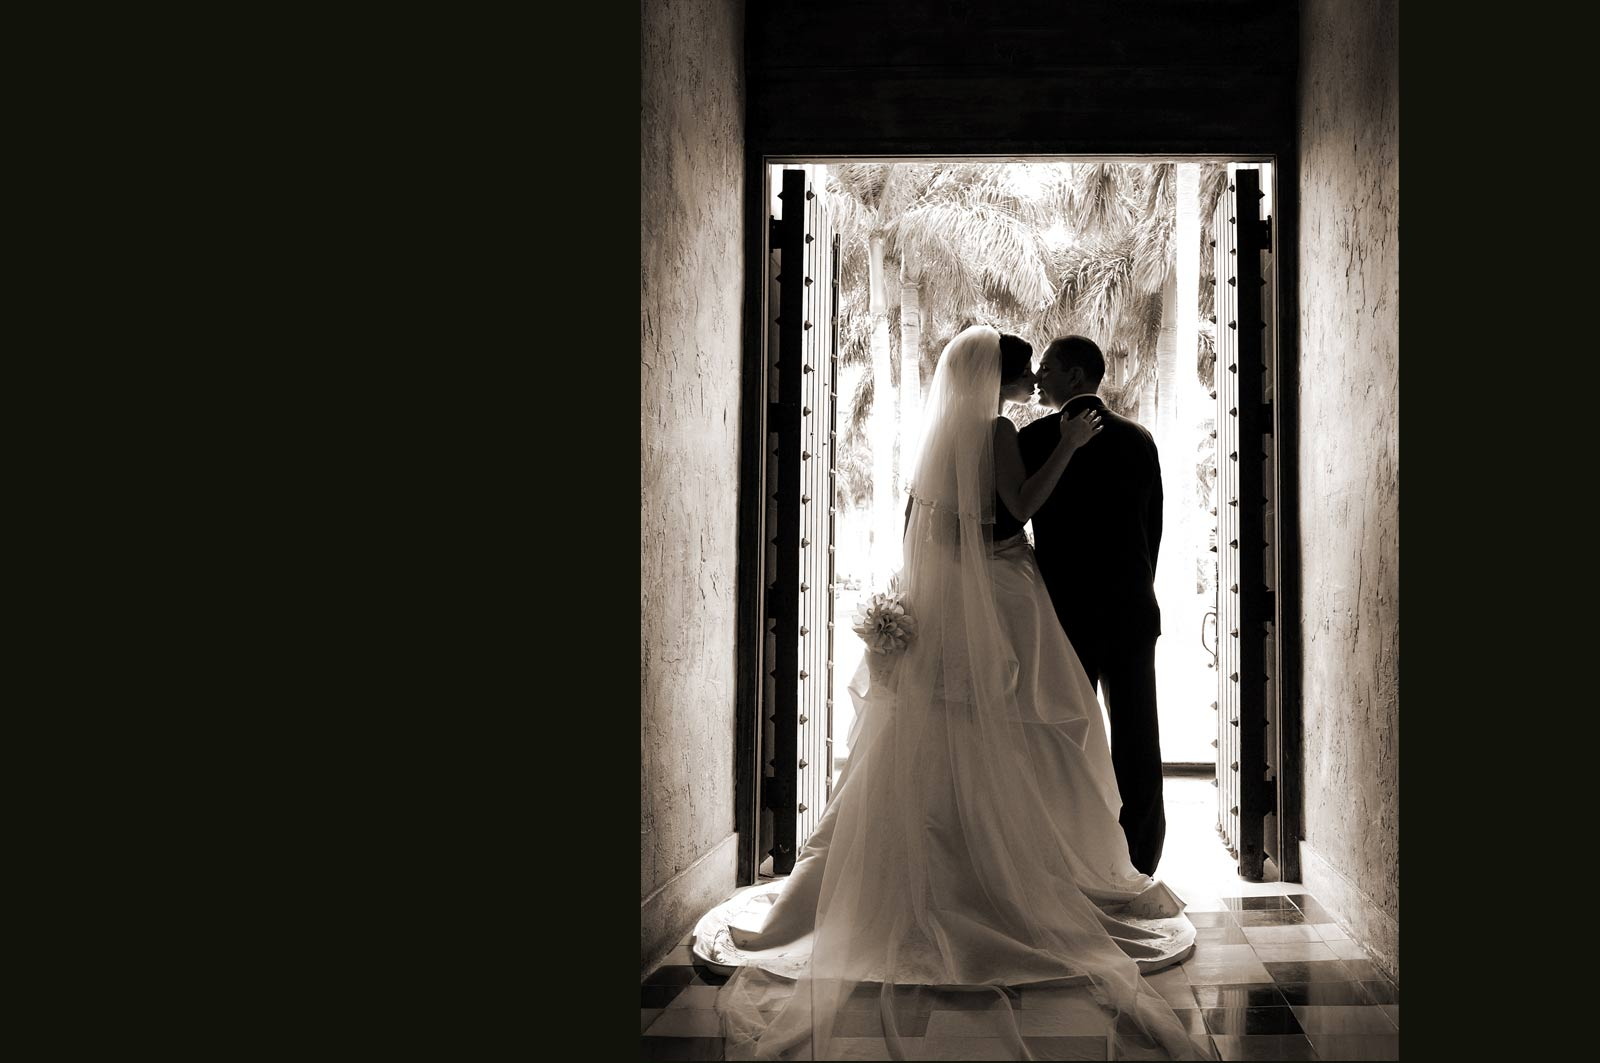 Romantic Wedding Couple Kissing under Door Frame in Sepia